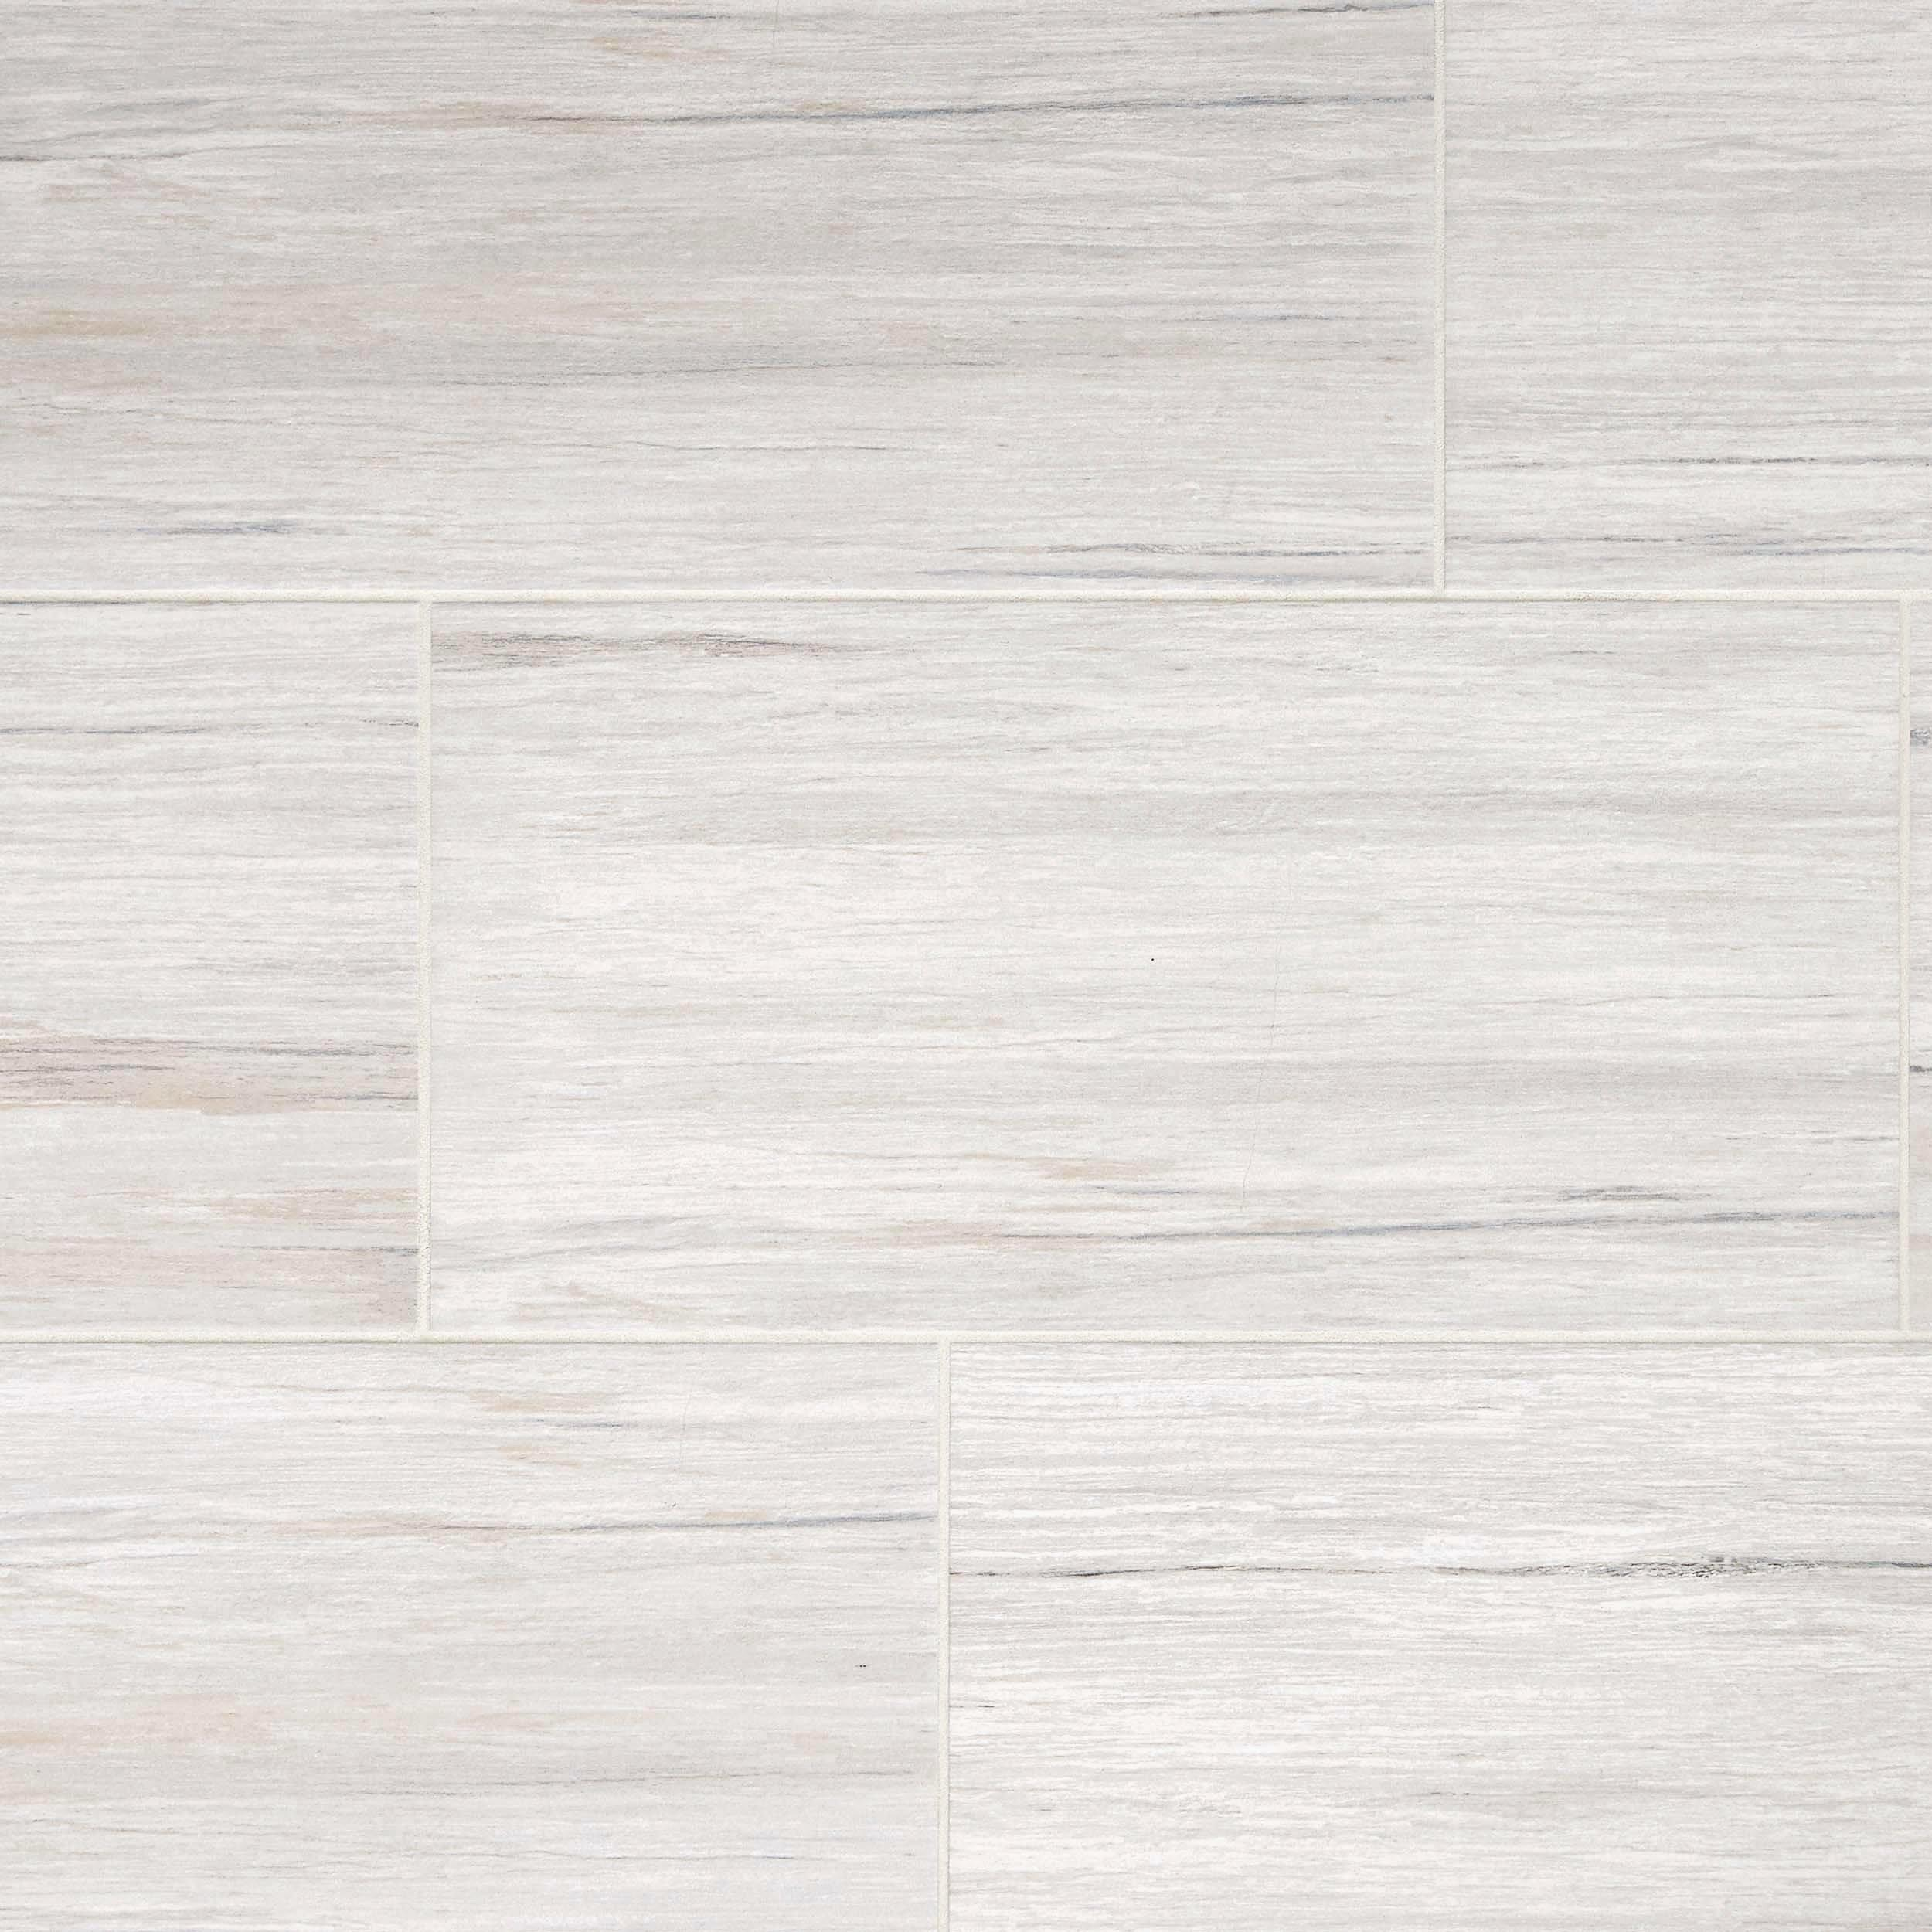 Porcelain Floor Tiles Porcelain Tile Floor And Decor